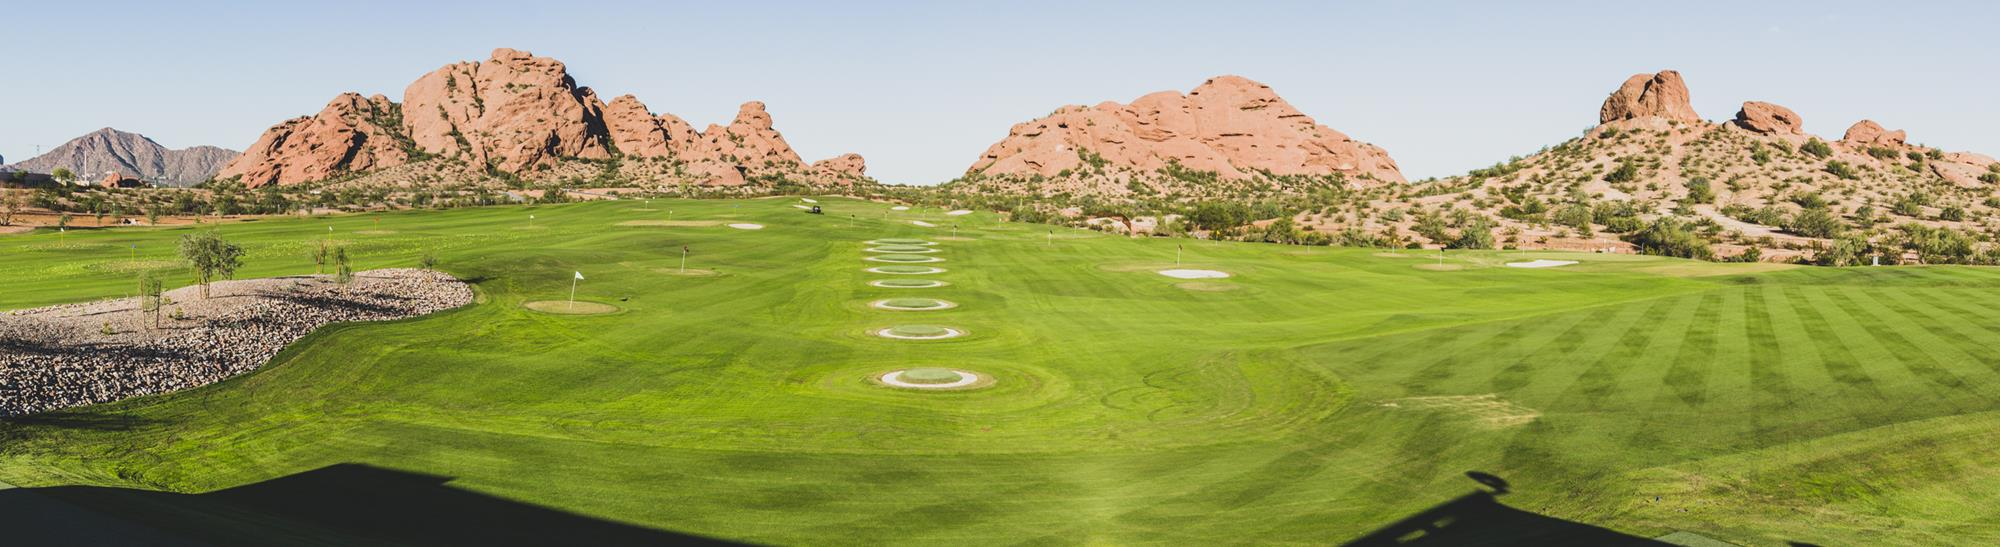 Papago Golf Course Facilities Arizona State University Athletics